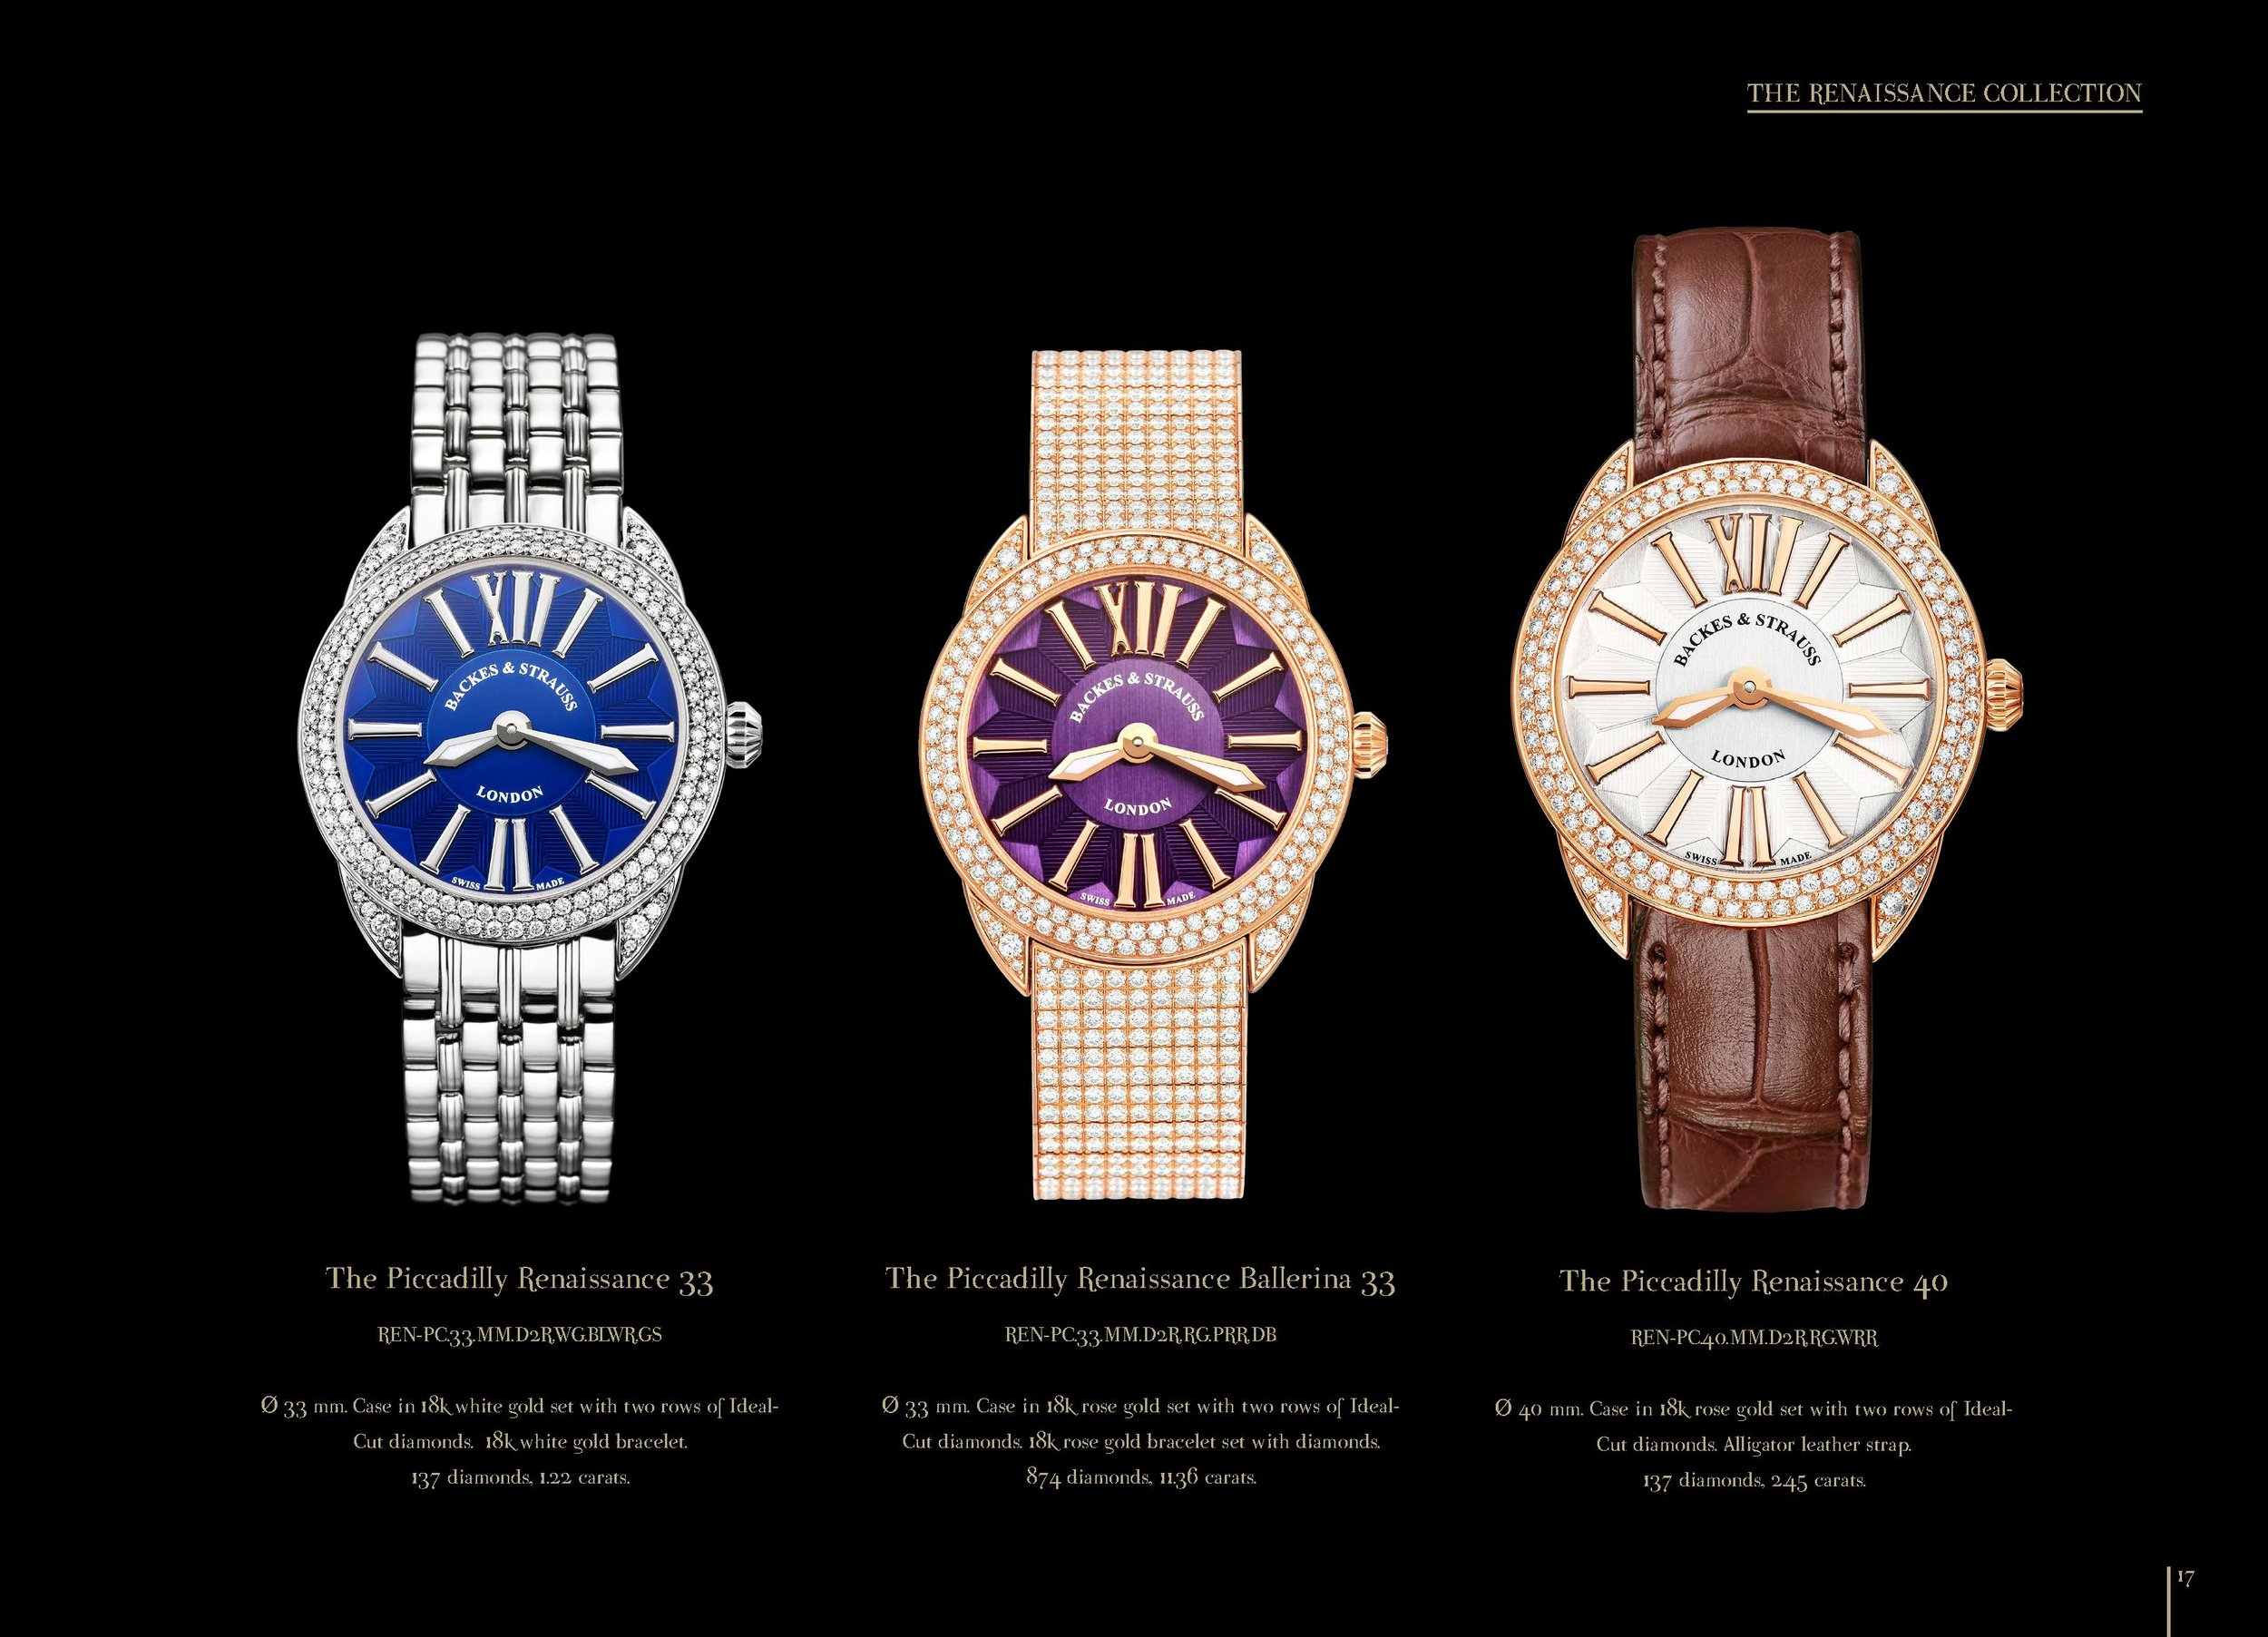 Piccadilly Renaissance watch